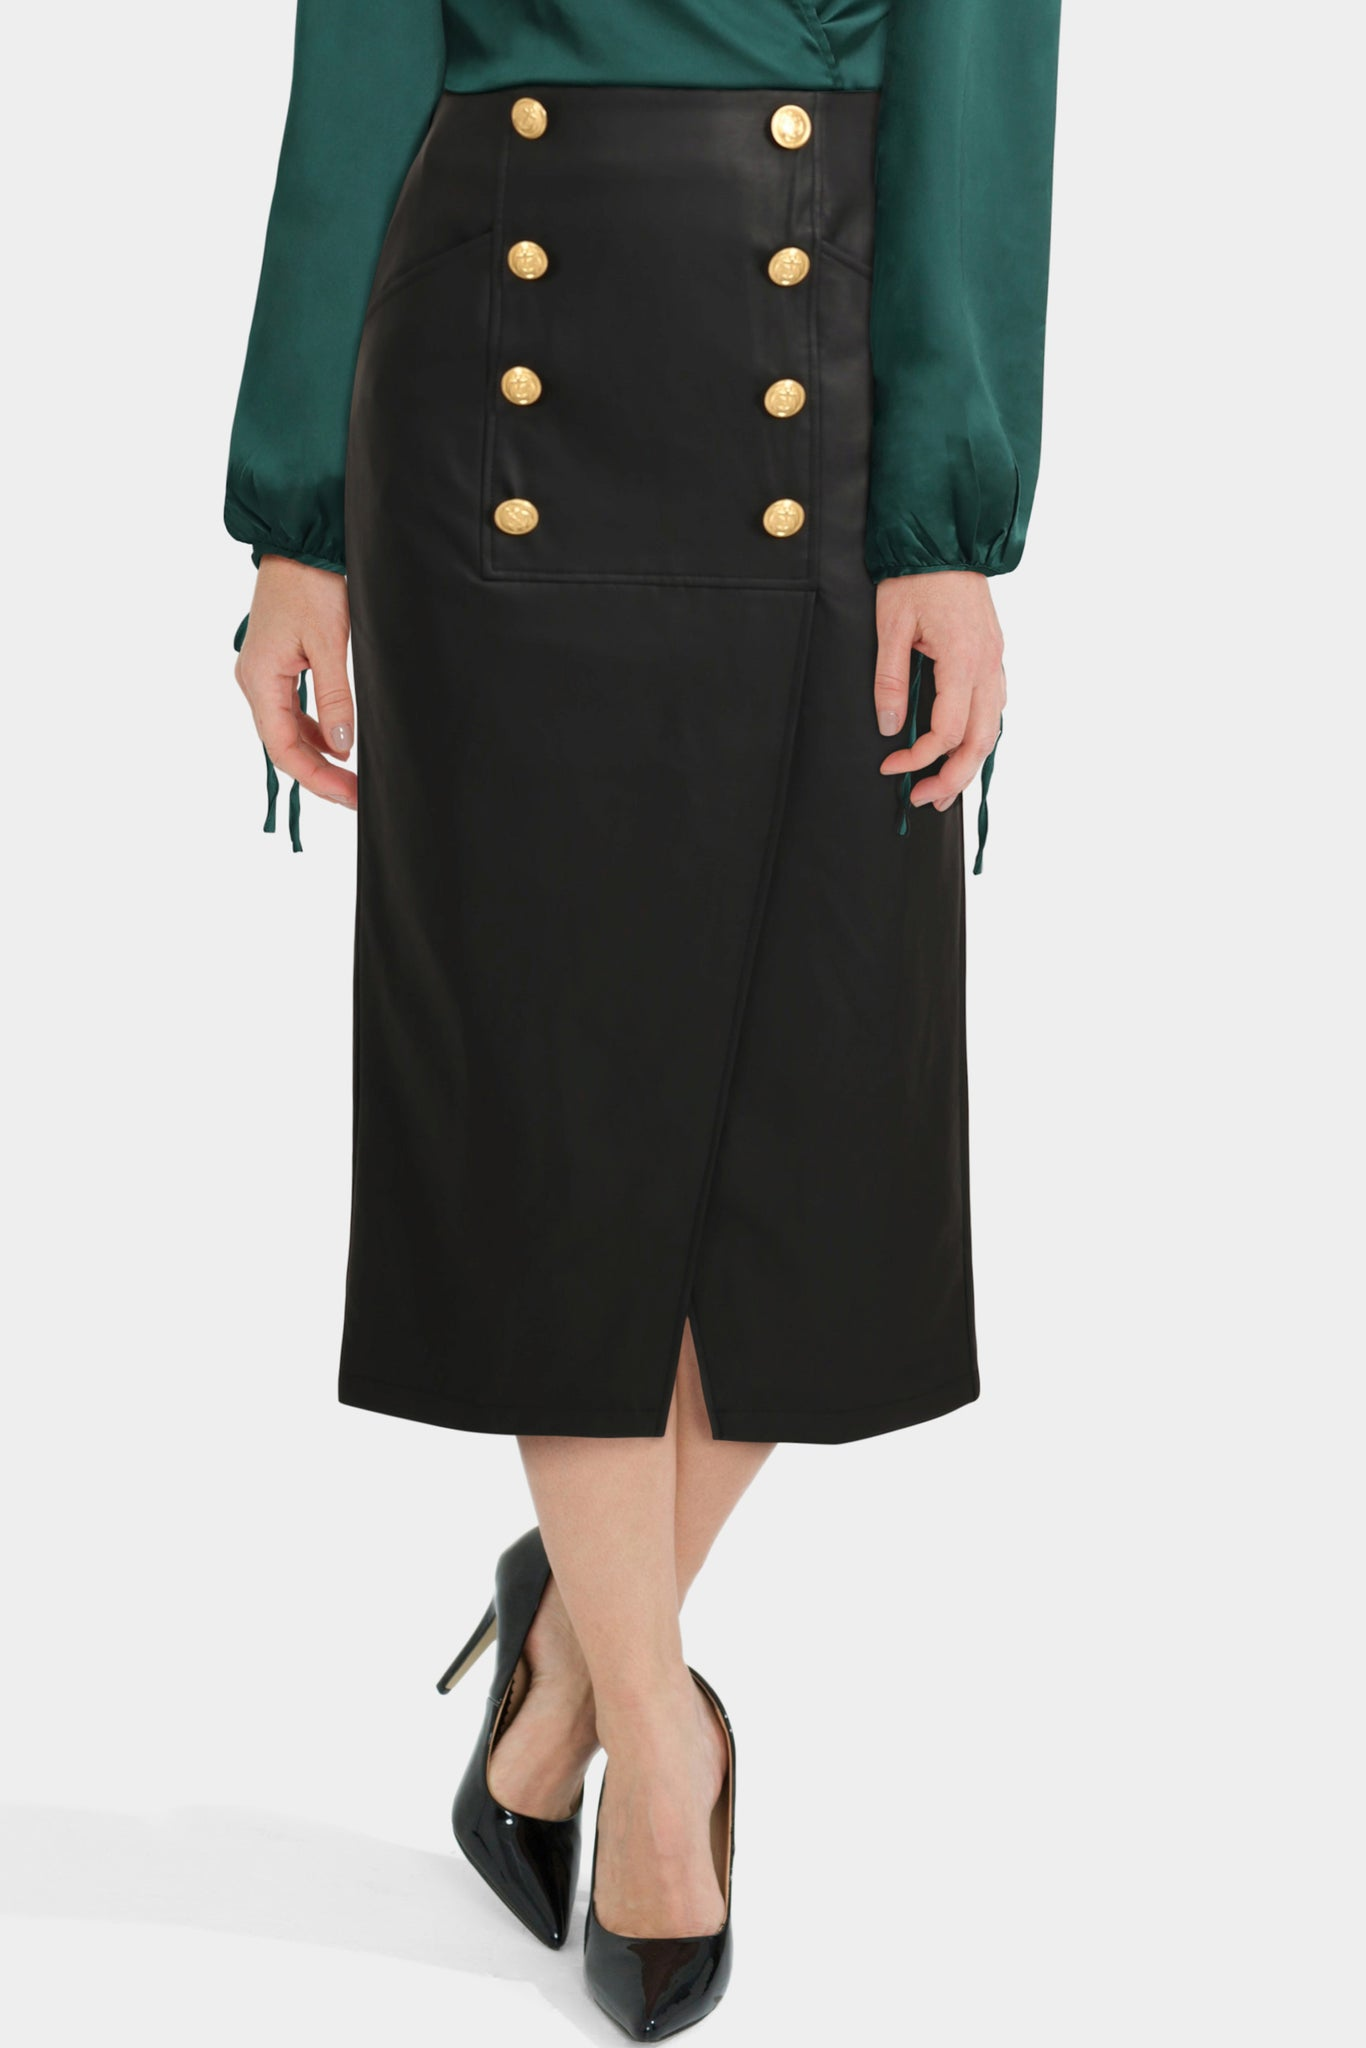 Leather Look Pencil Midi Skirt With Button Front